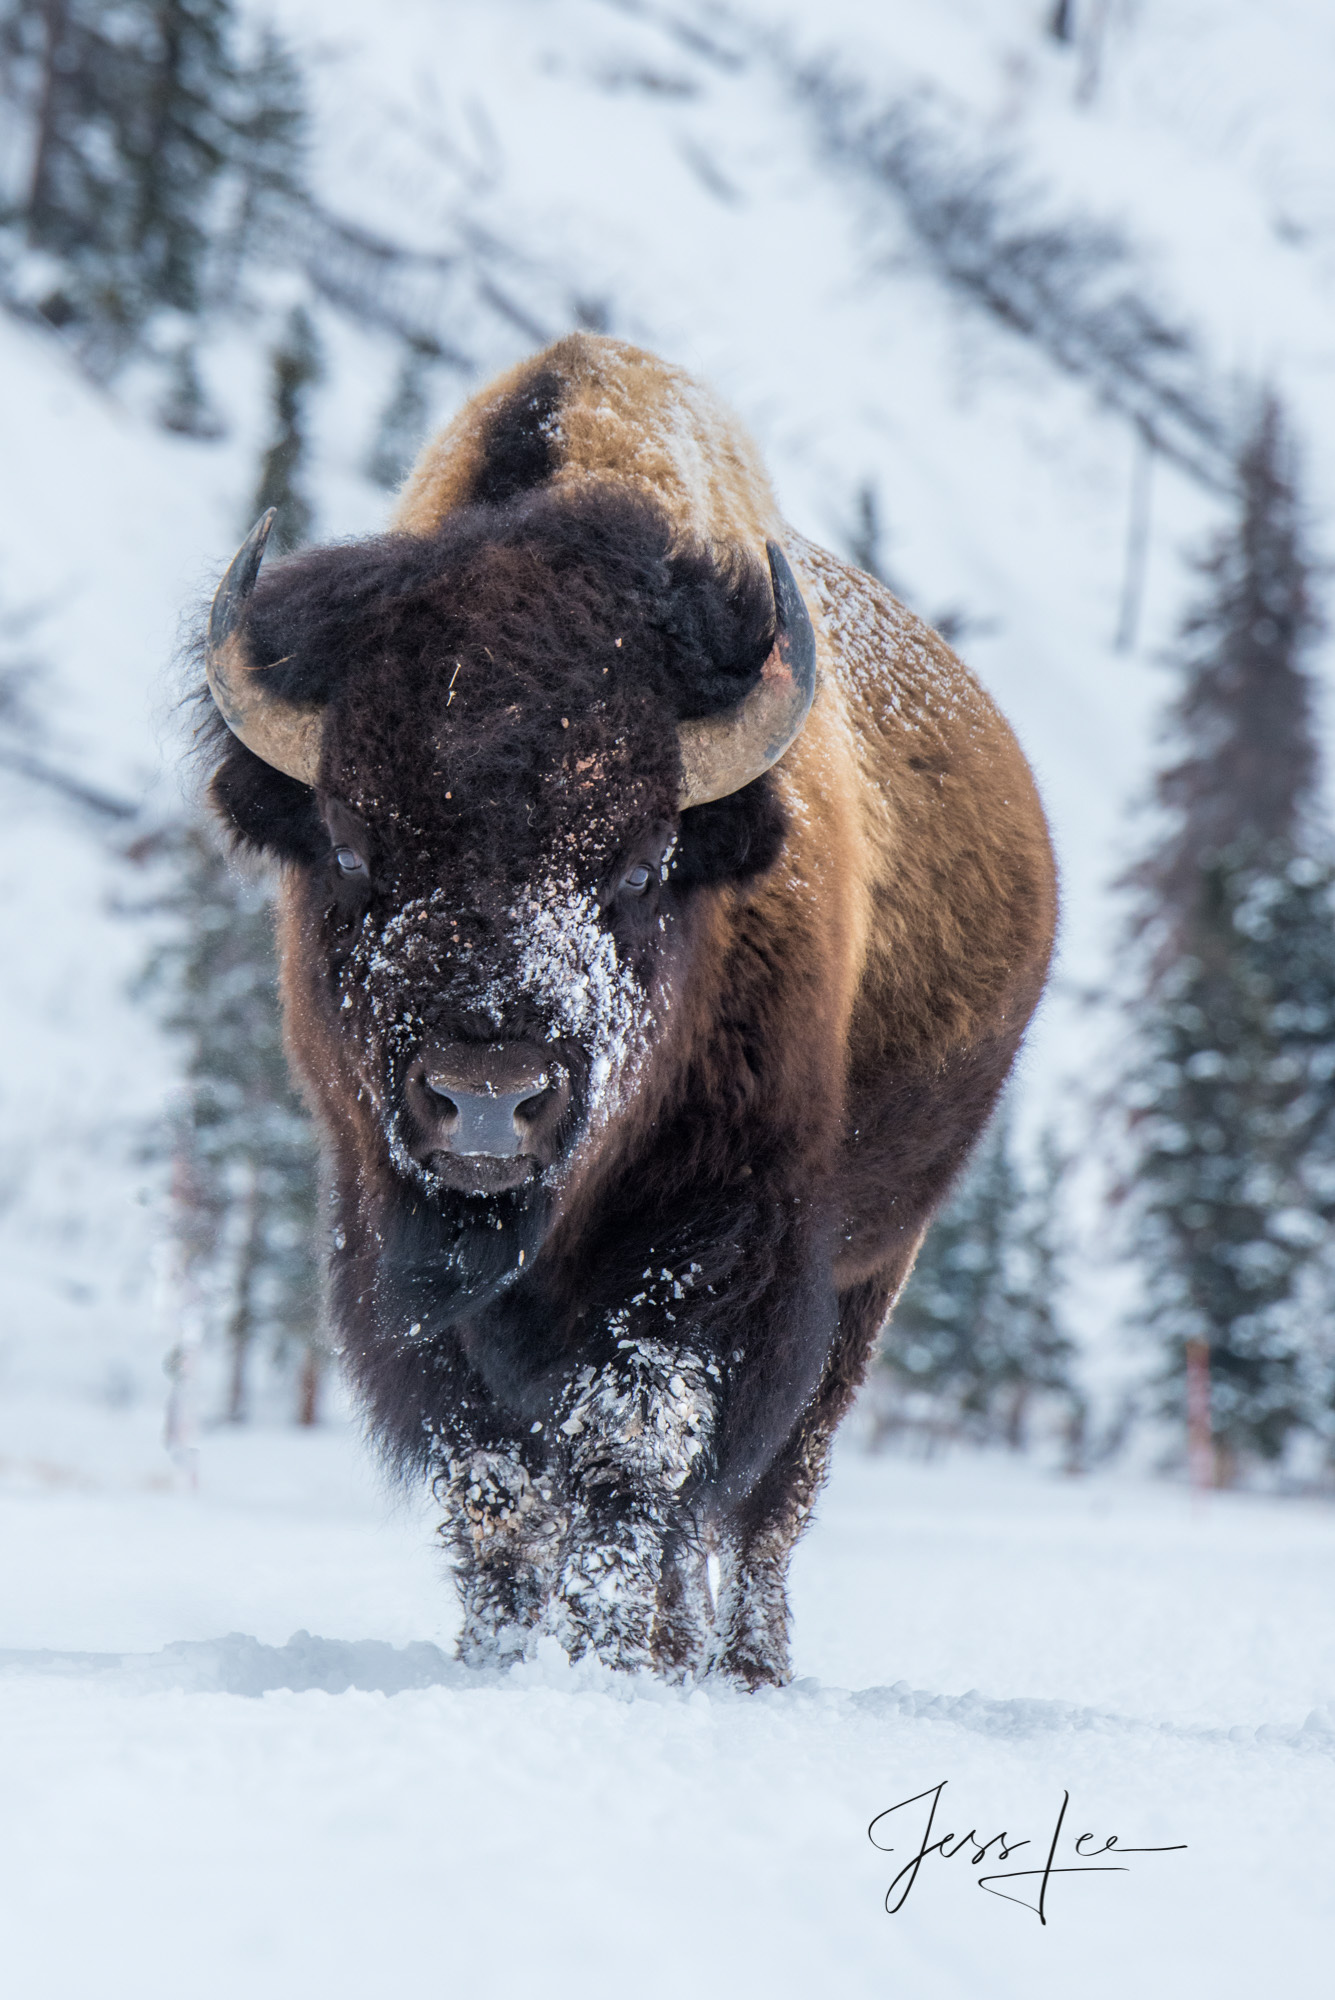 Big Bull Bison in winter with frost or snow on his face, , photo